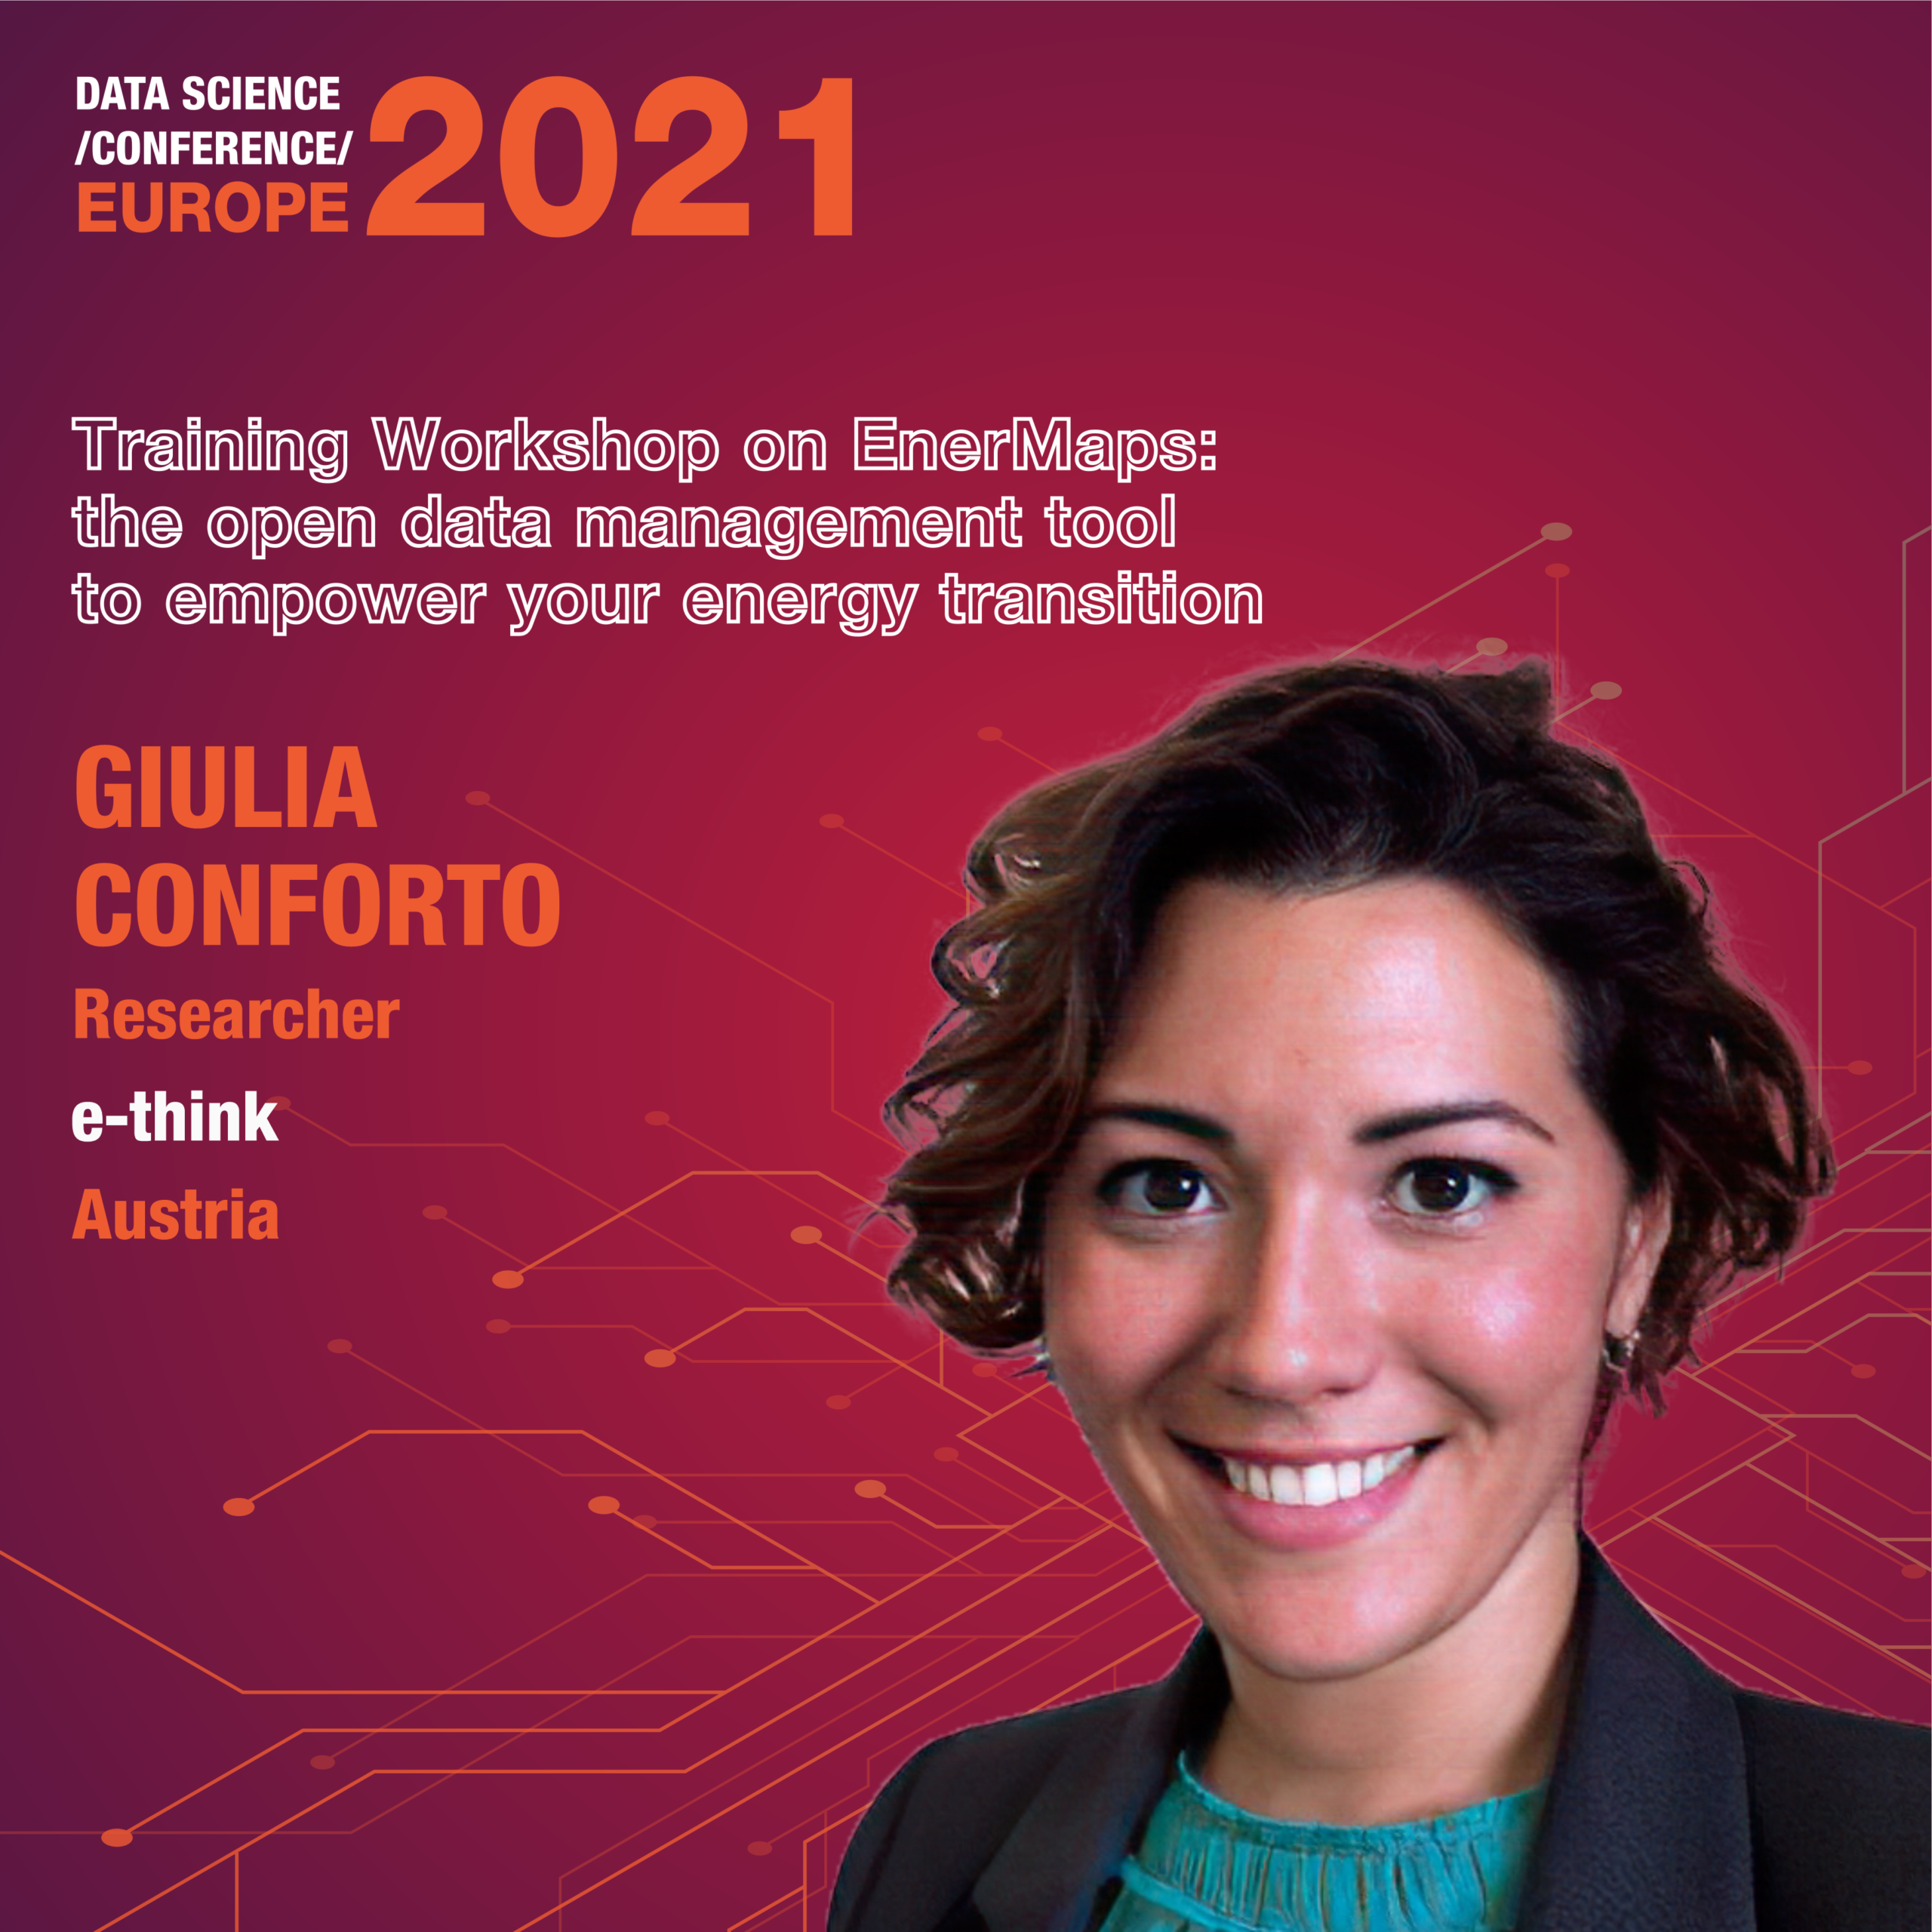 Data Science Conference Europe: Online training session